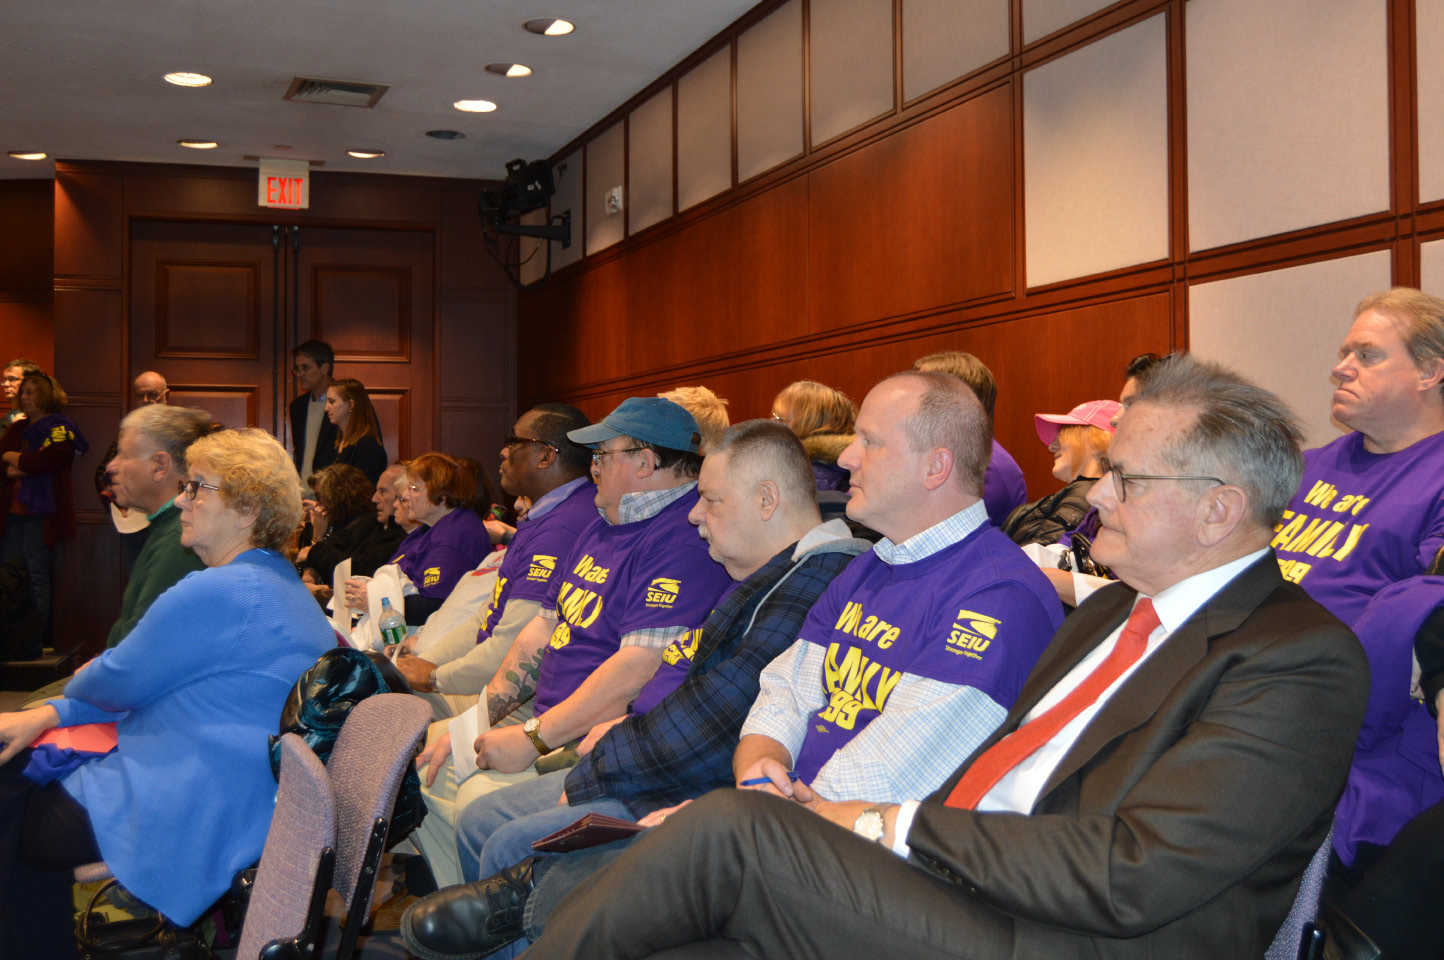 Advocates for intellectual and developmentally disabled residents attended a public hearing Tuesday in Hartford to discuss the Department of Developmental Services